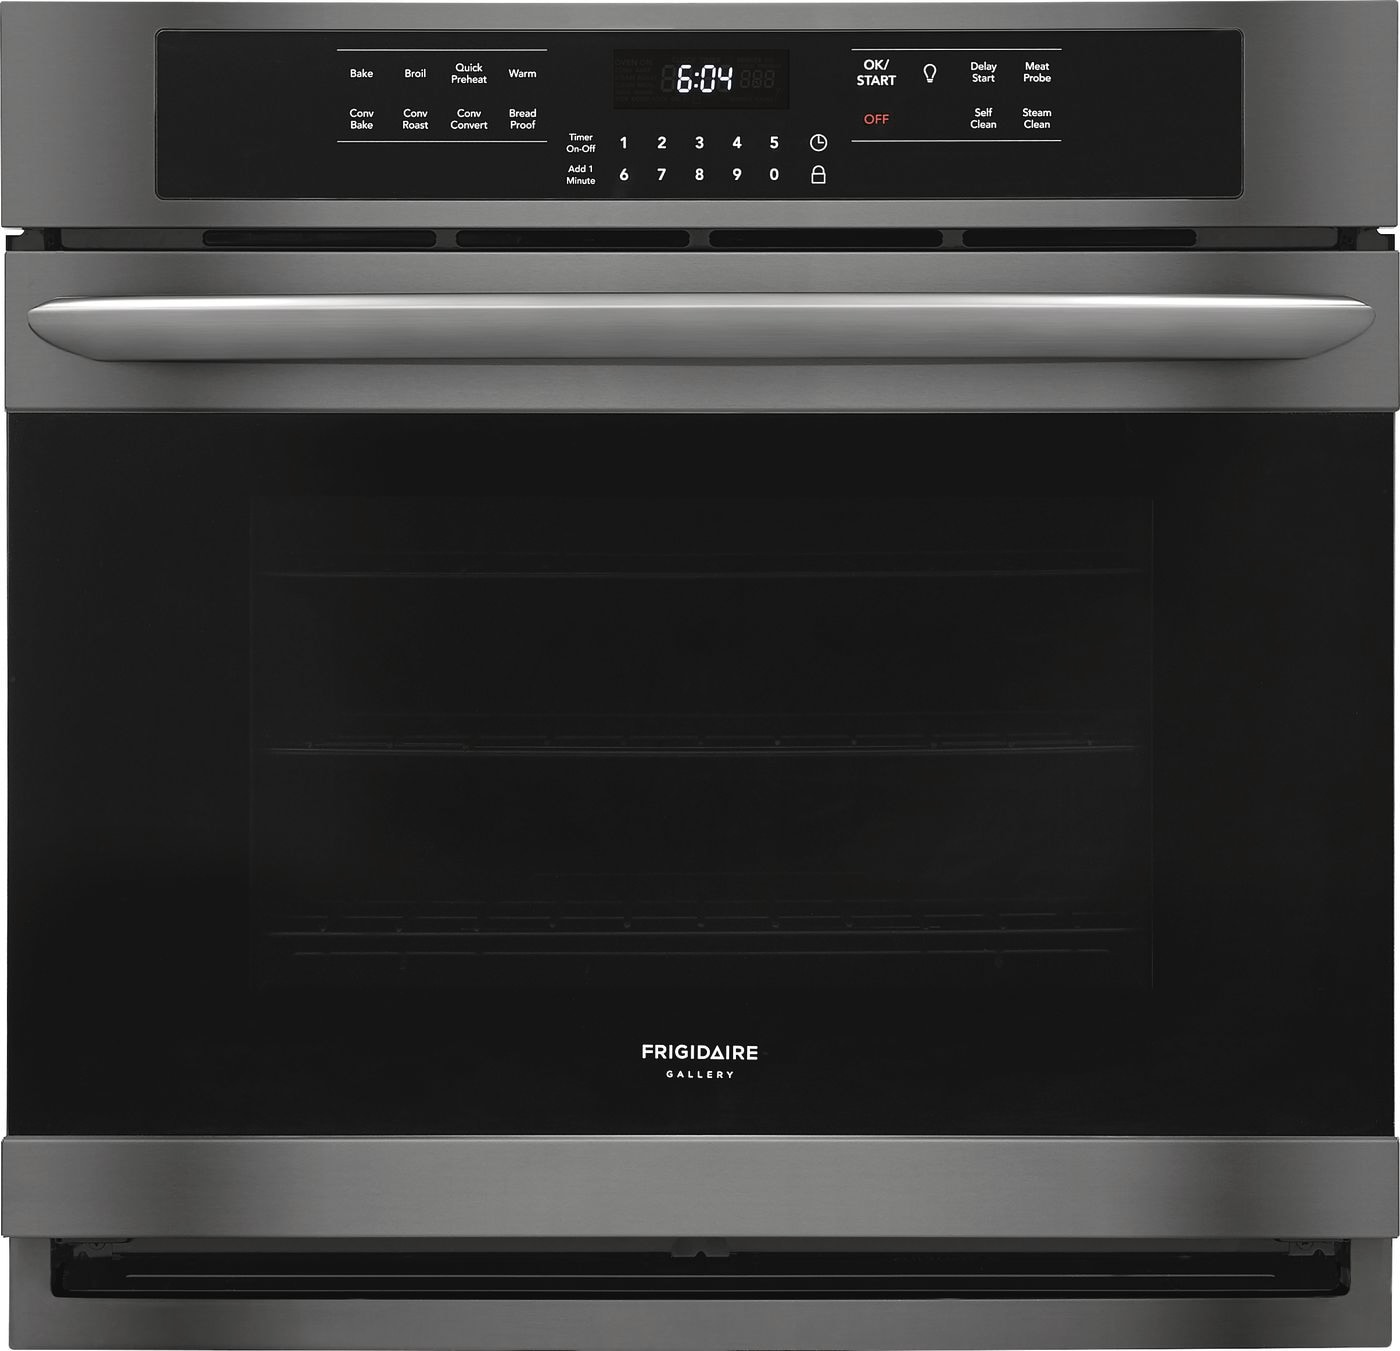 "Frigidaire Gallery 30"" Single Electric Wall Oven"